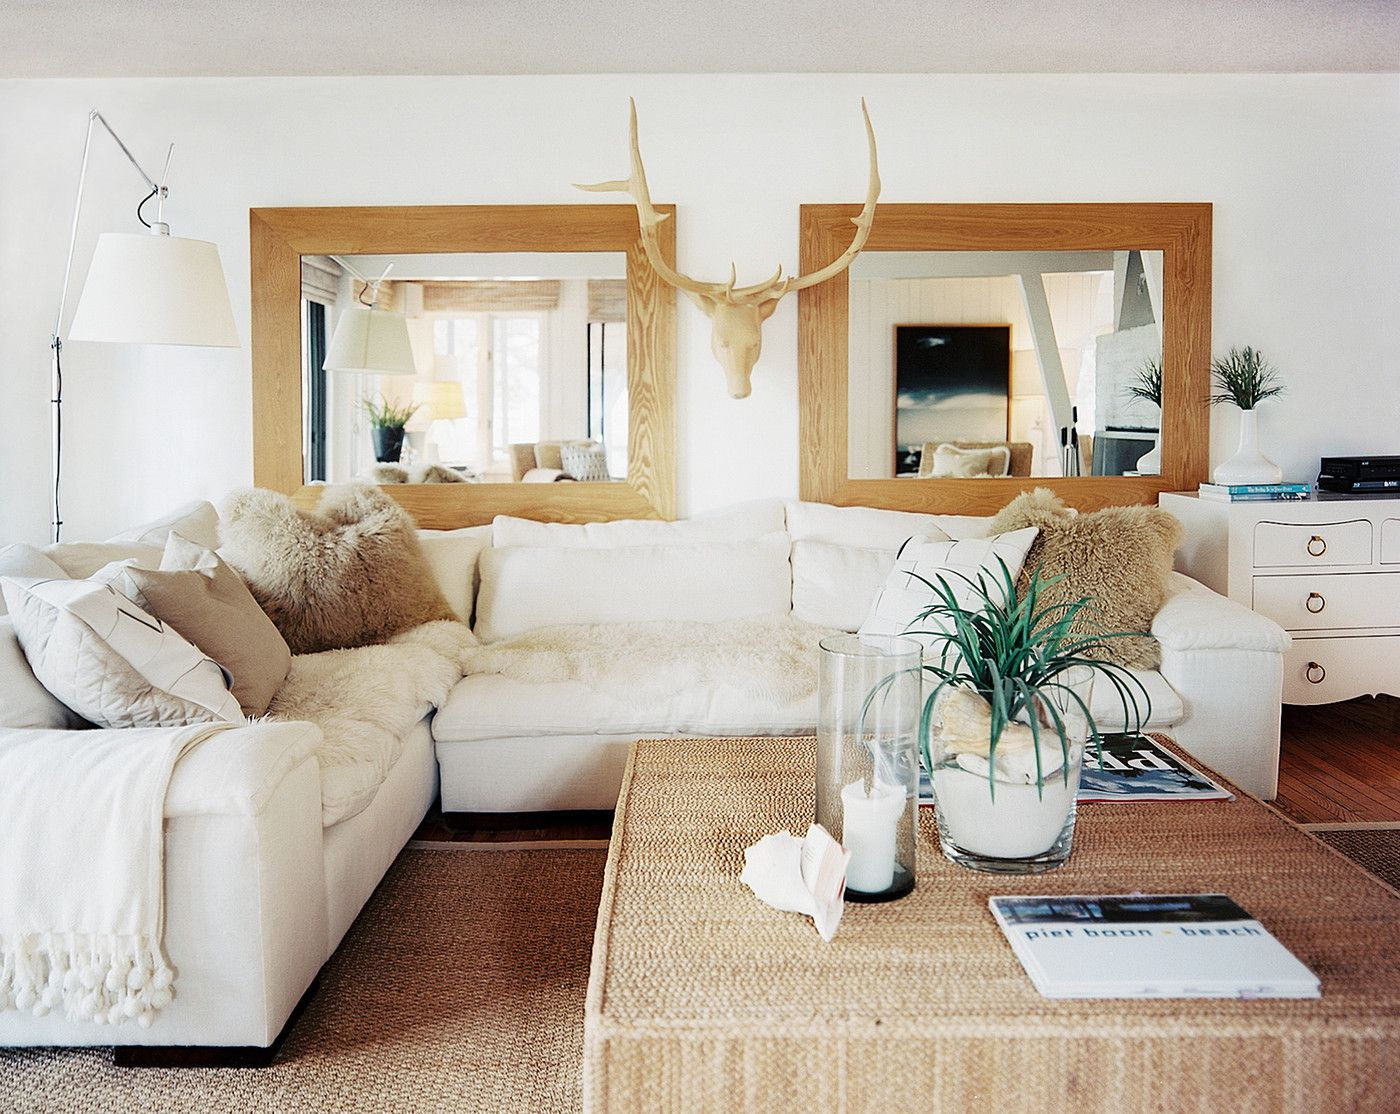 1000  images about Living room layout on Pinterest   Sectional sofas  Ottomans and Small apartments. 1000  images about Living room layout on Pinterest   Sectional